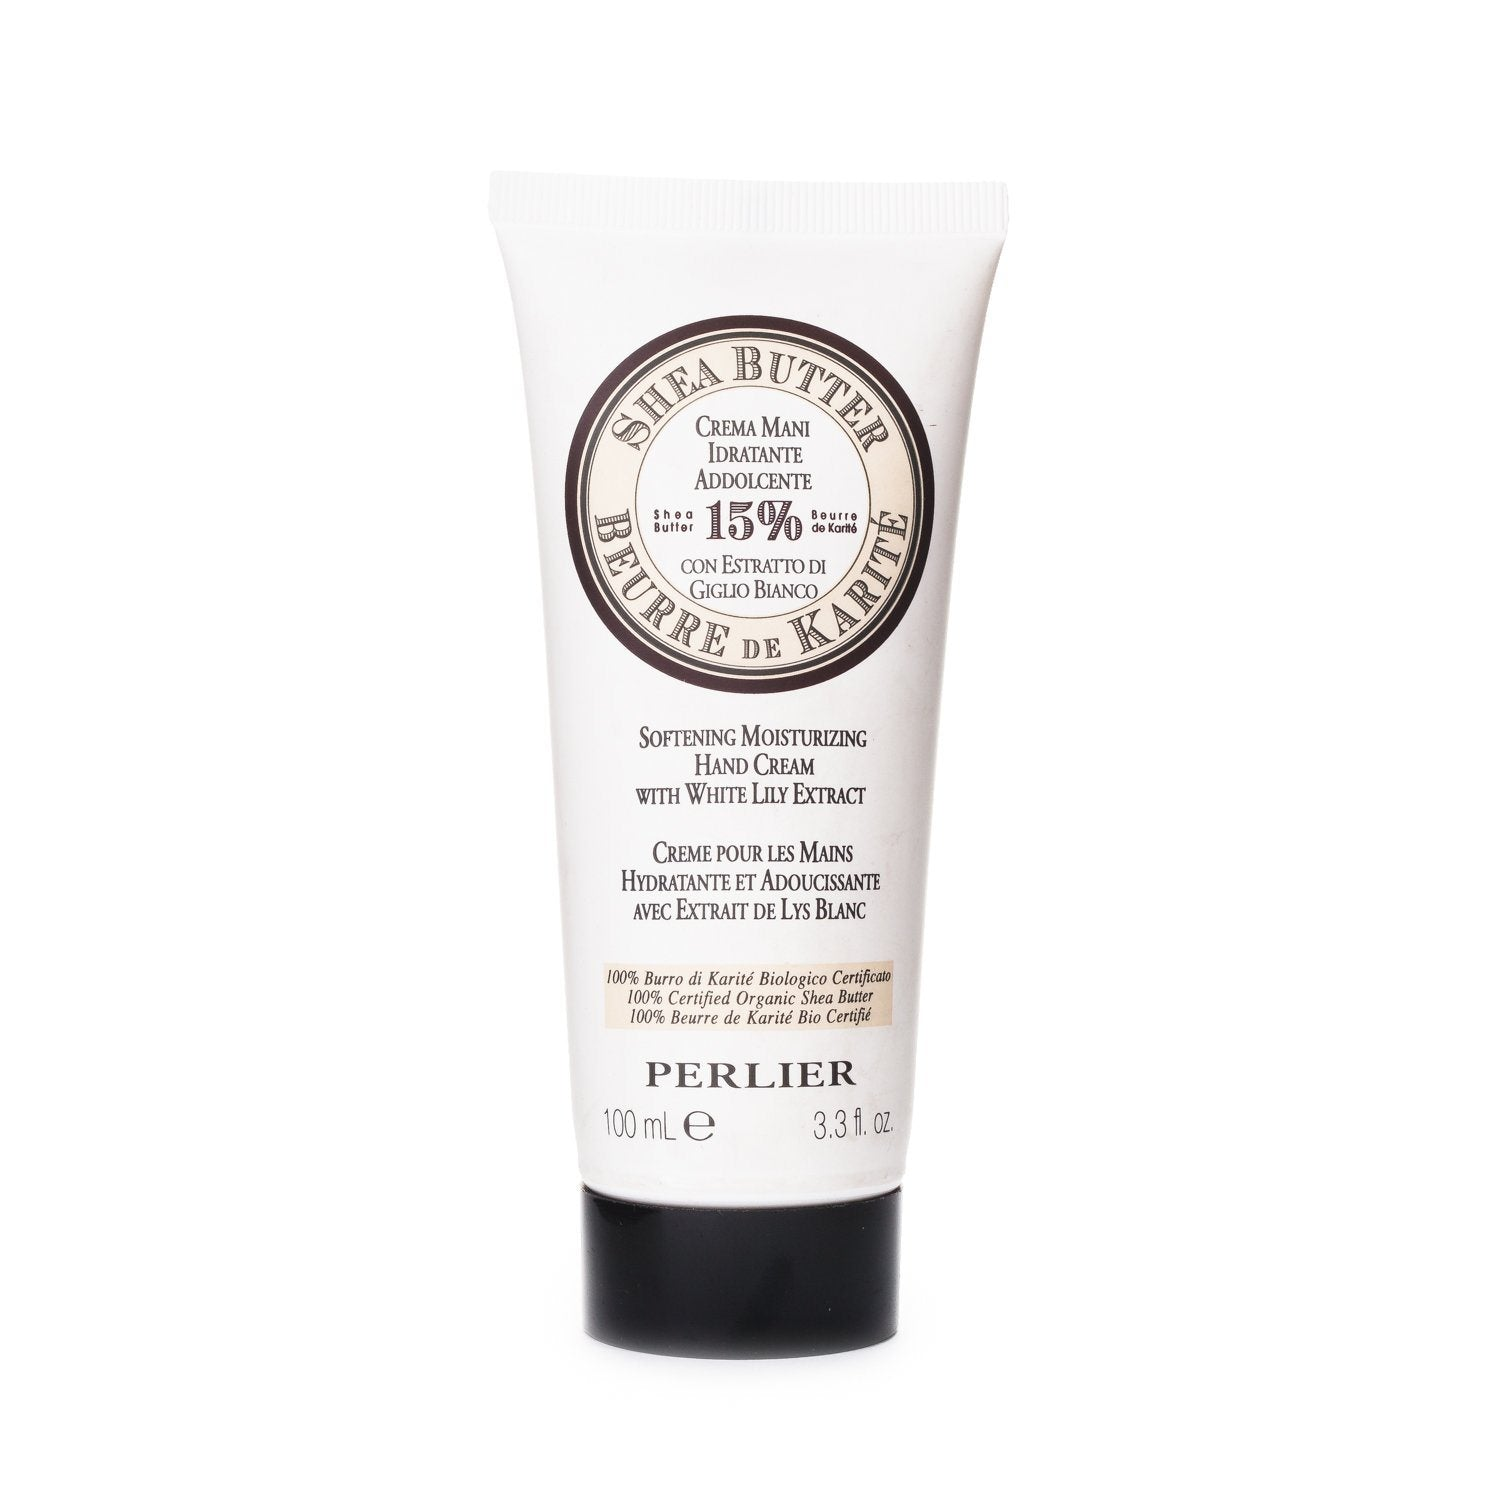 Shea Butter with White Lily Hand Cream 3.3 fl oz